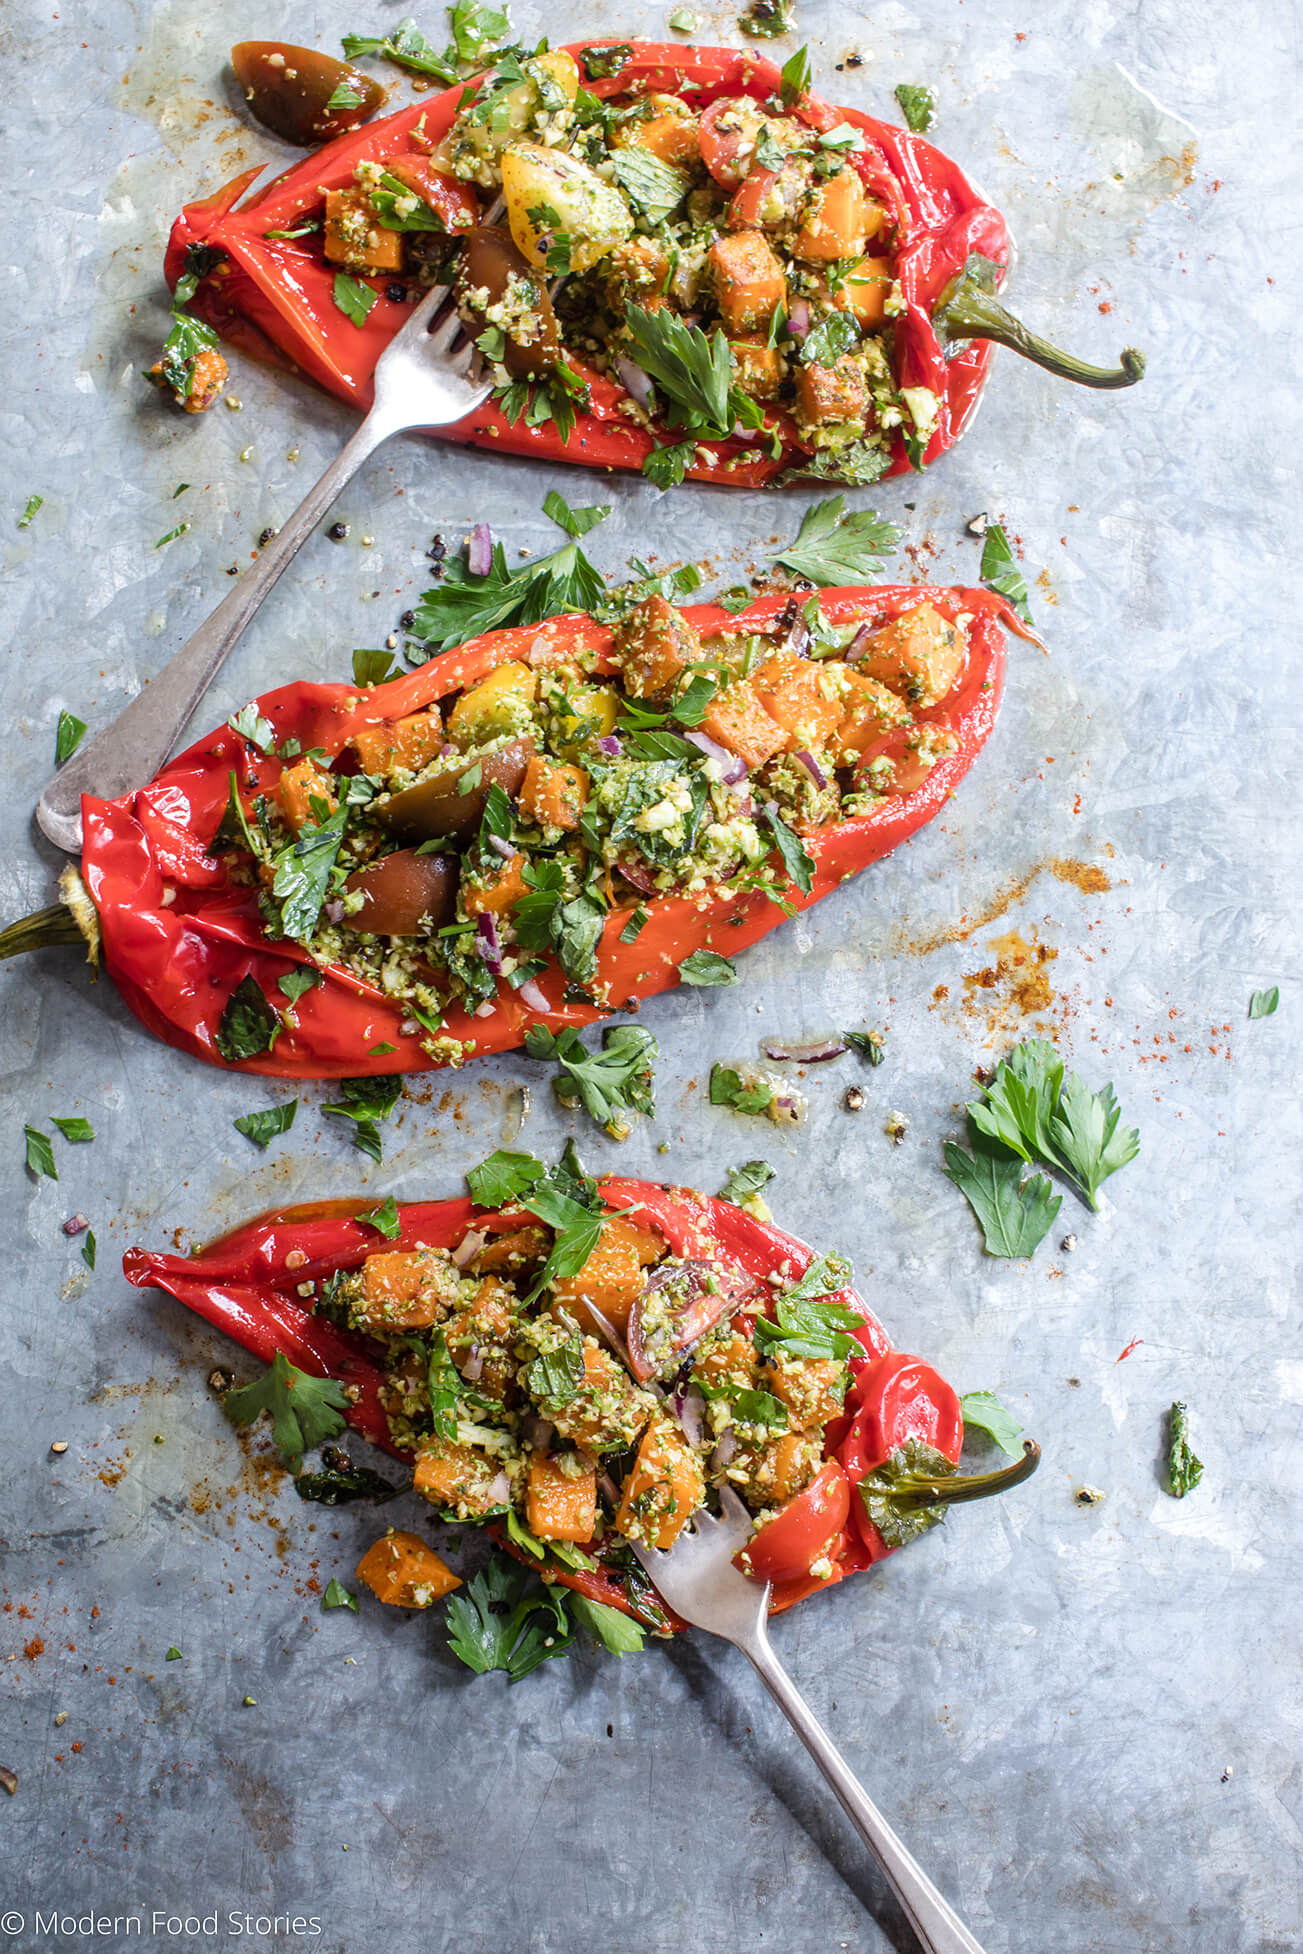 stuffed roast peppers, stuffed roasted peppers, food photography, Modern food Stories, Paleo Crust, BBQ recipes, Easy BBQ recipes, gluten free BBQ recipe, grain free BBQ recipes, Paleo, Keto, low carb, food styling